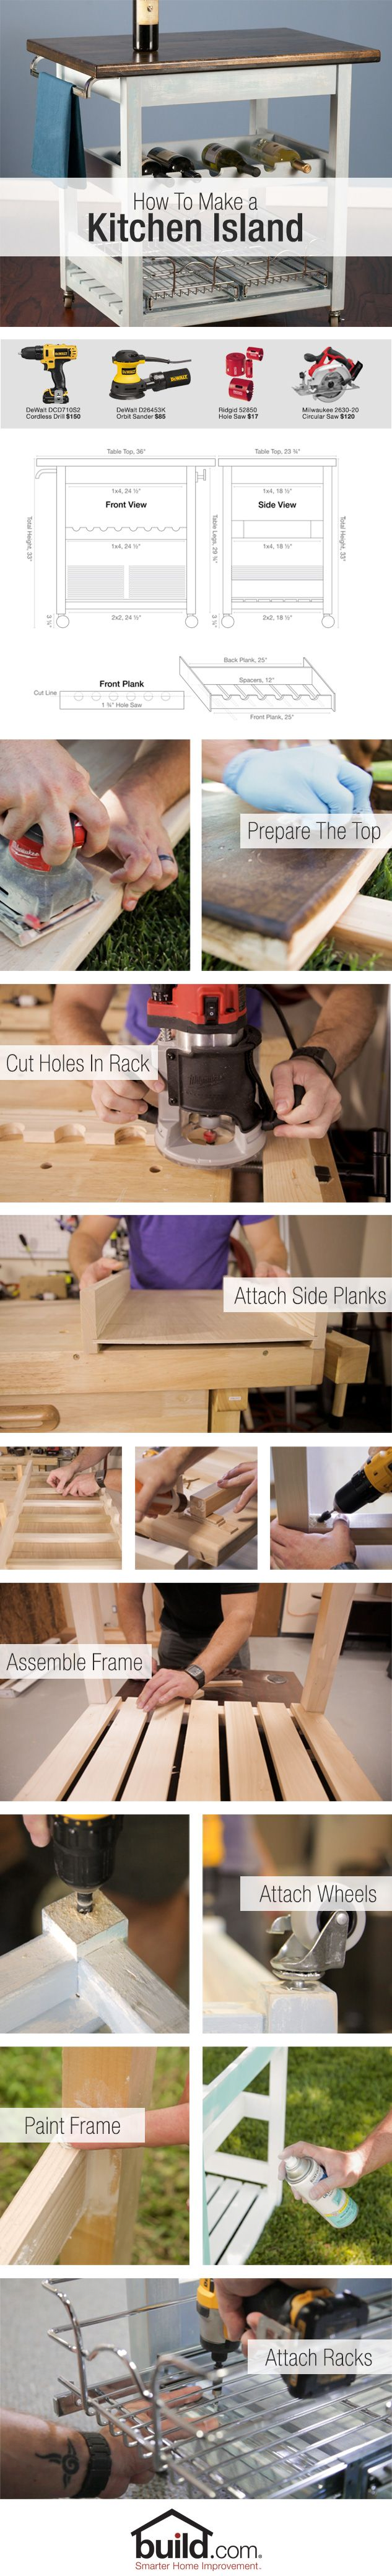 Make a rolling island for your kitchen. Introducing an island to your cook-space can create the utility and style to bring your crafty kitchen to the next level. Check out our how to video and detailed instructions.